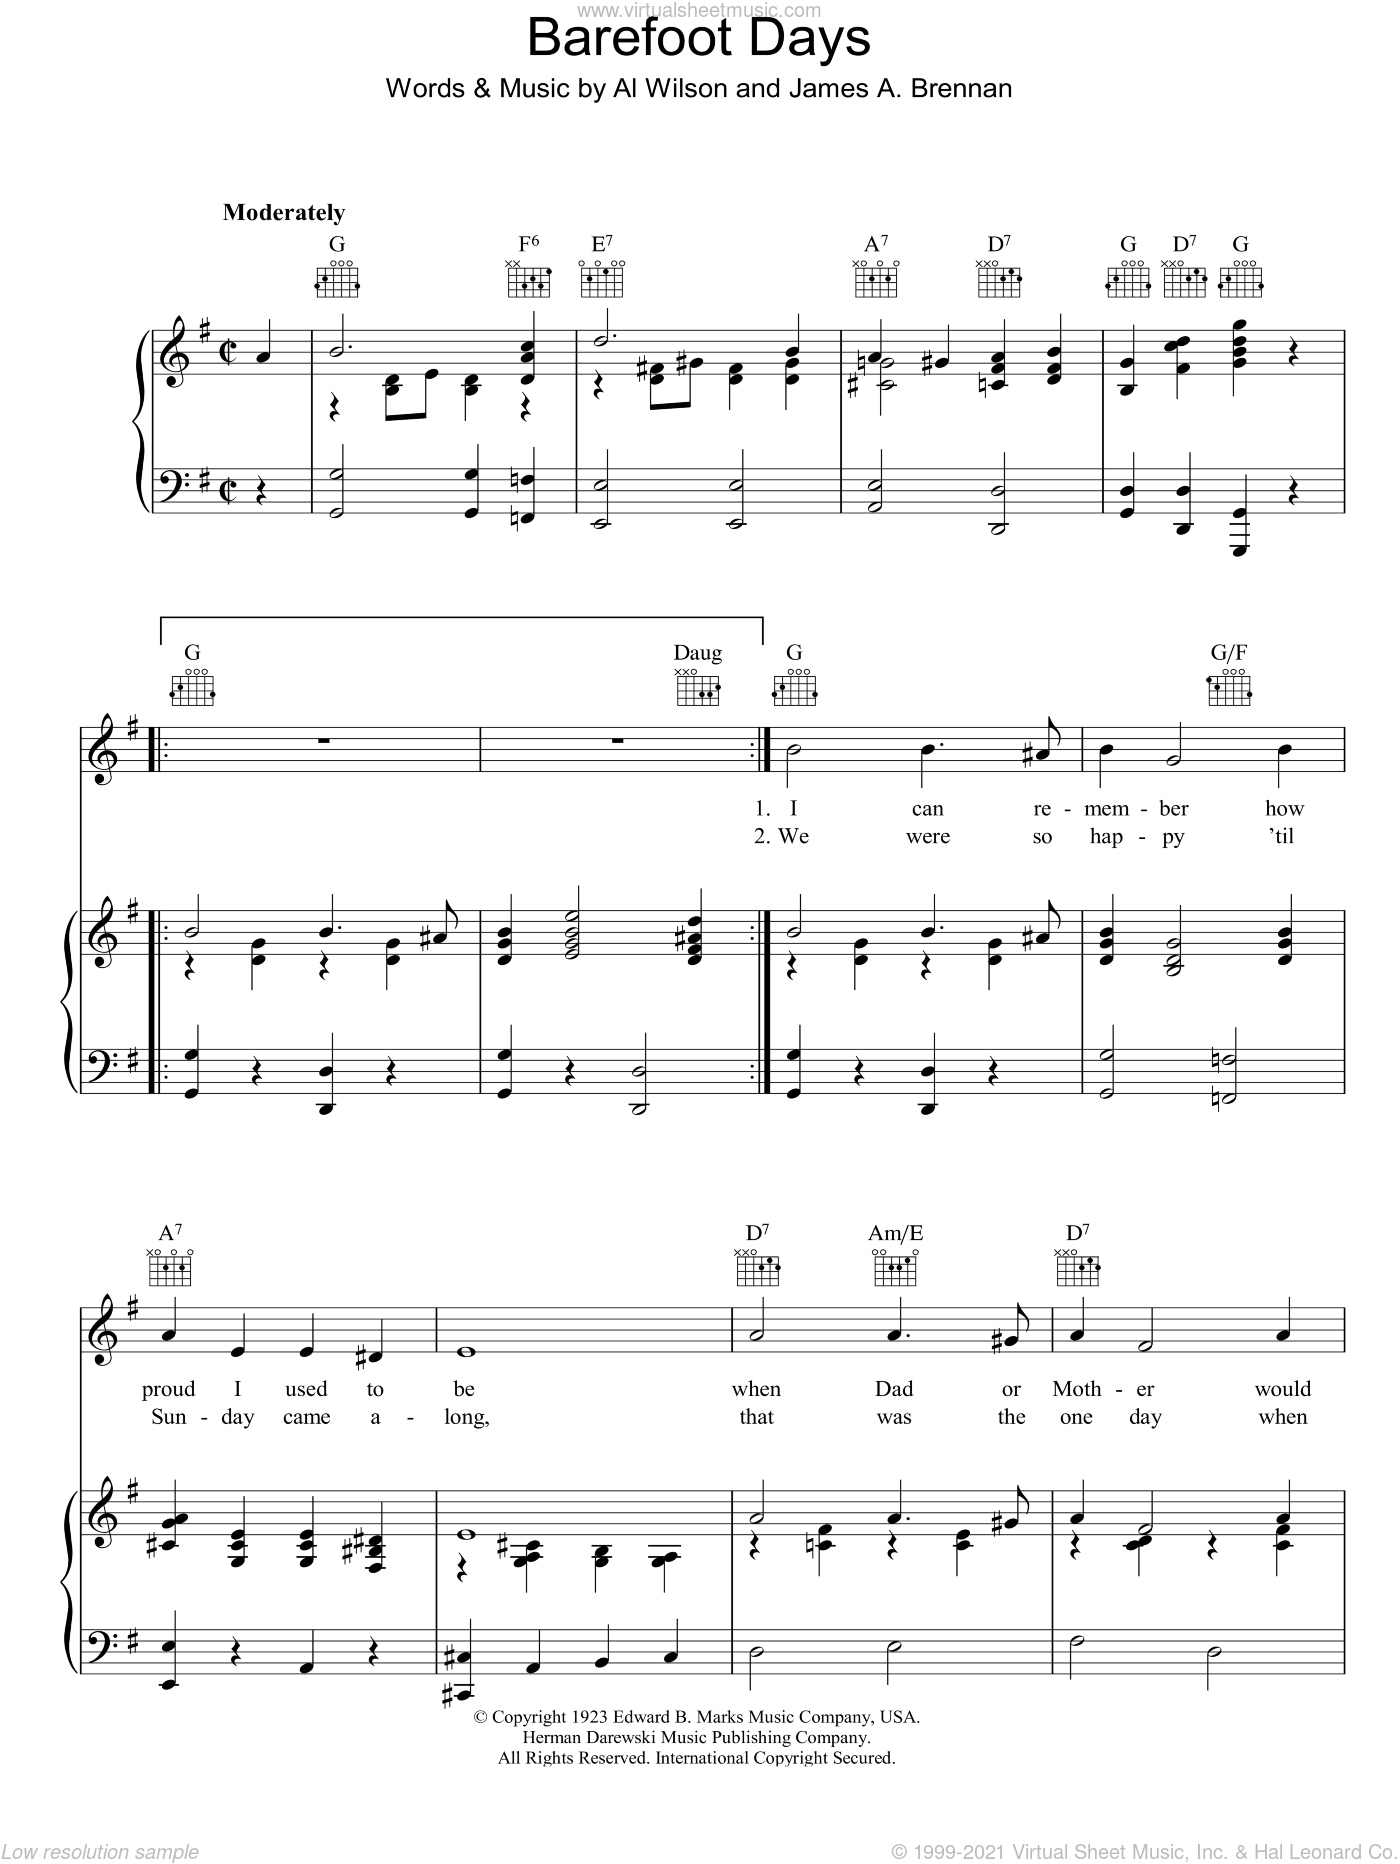 Barefoot Days sheet music for voice, piano or guitar by James Brennan. Score Image Preview.